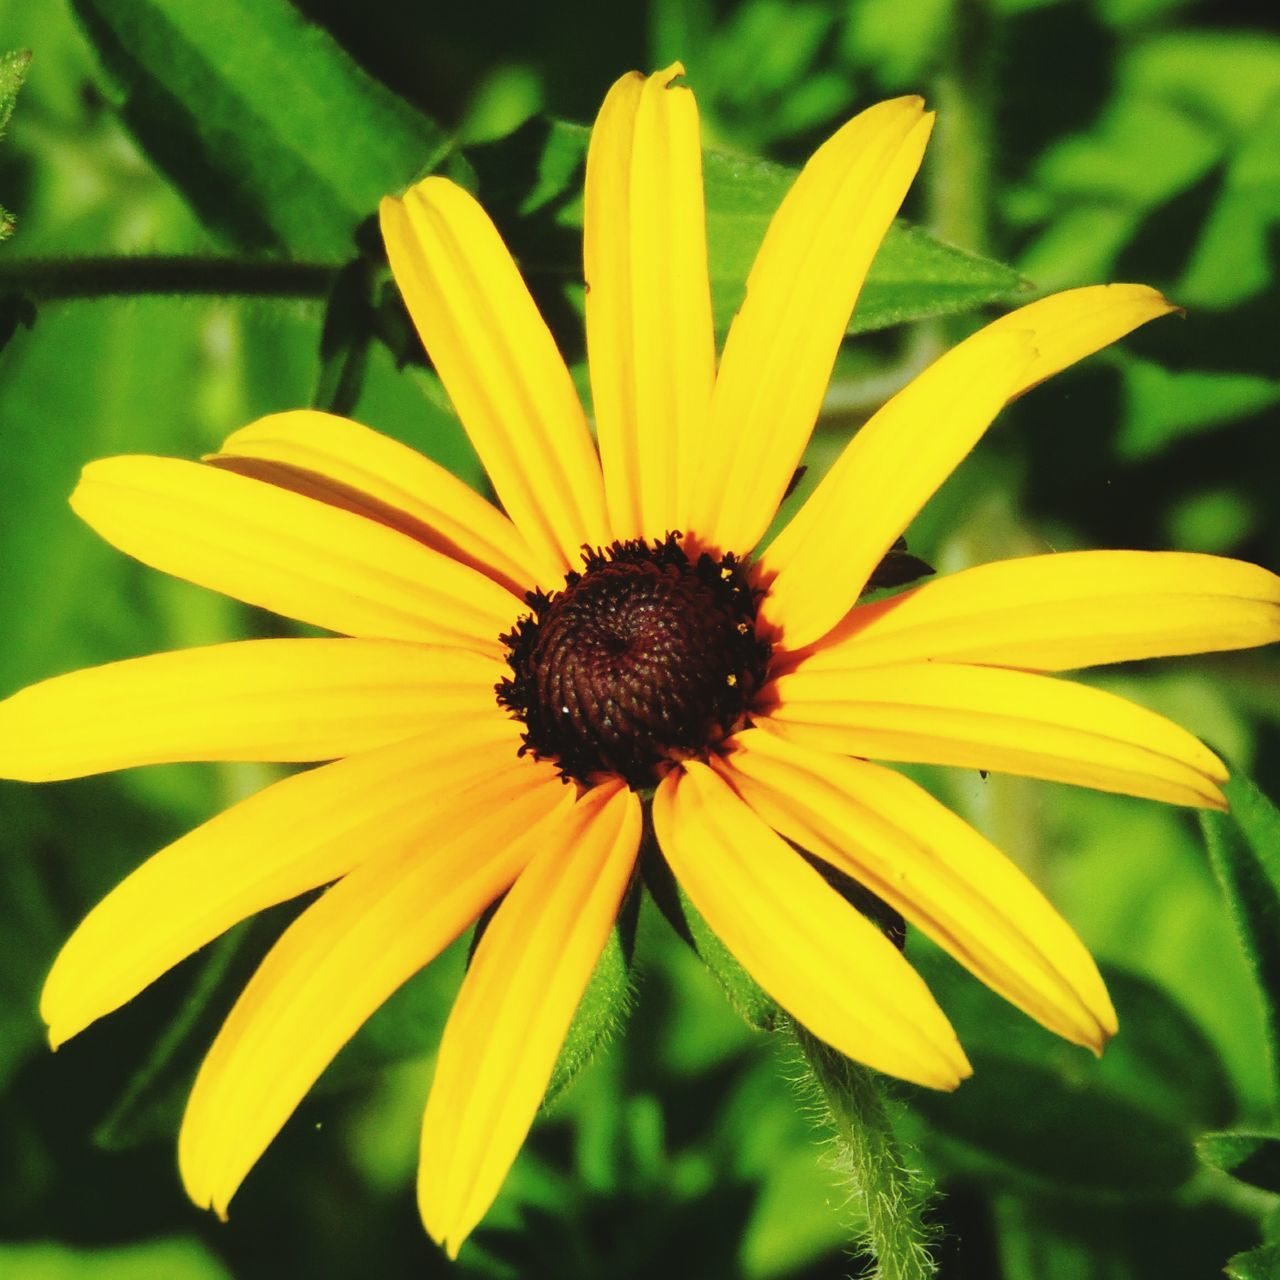 flower, fragility, yellow, petal, flower head, growth, freshness, beauty in nature, nature, pollen, plant, day, focus on foreground, close-up, no people, blooming, outdoors, black-eyed susan